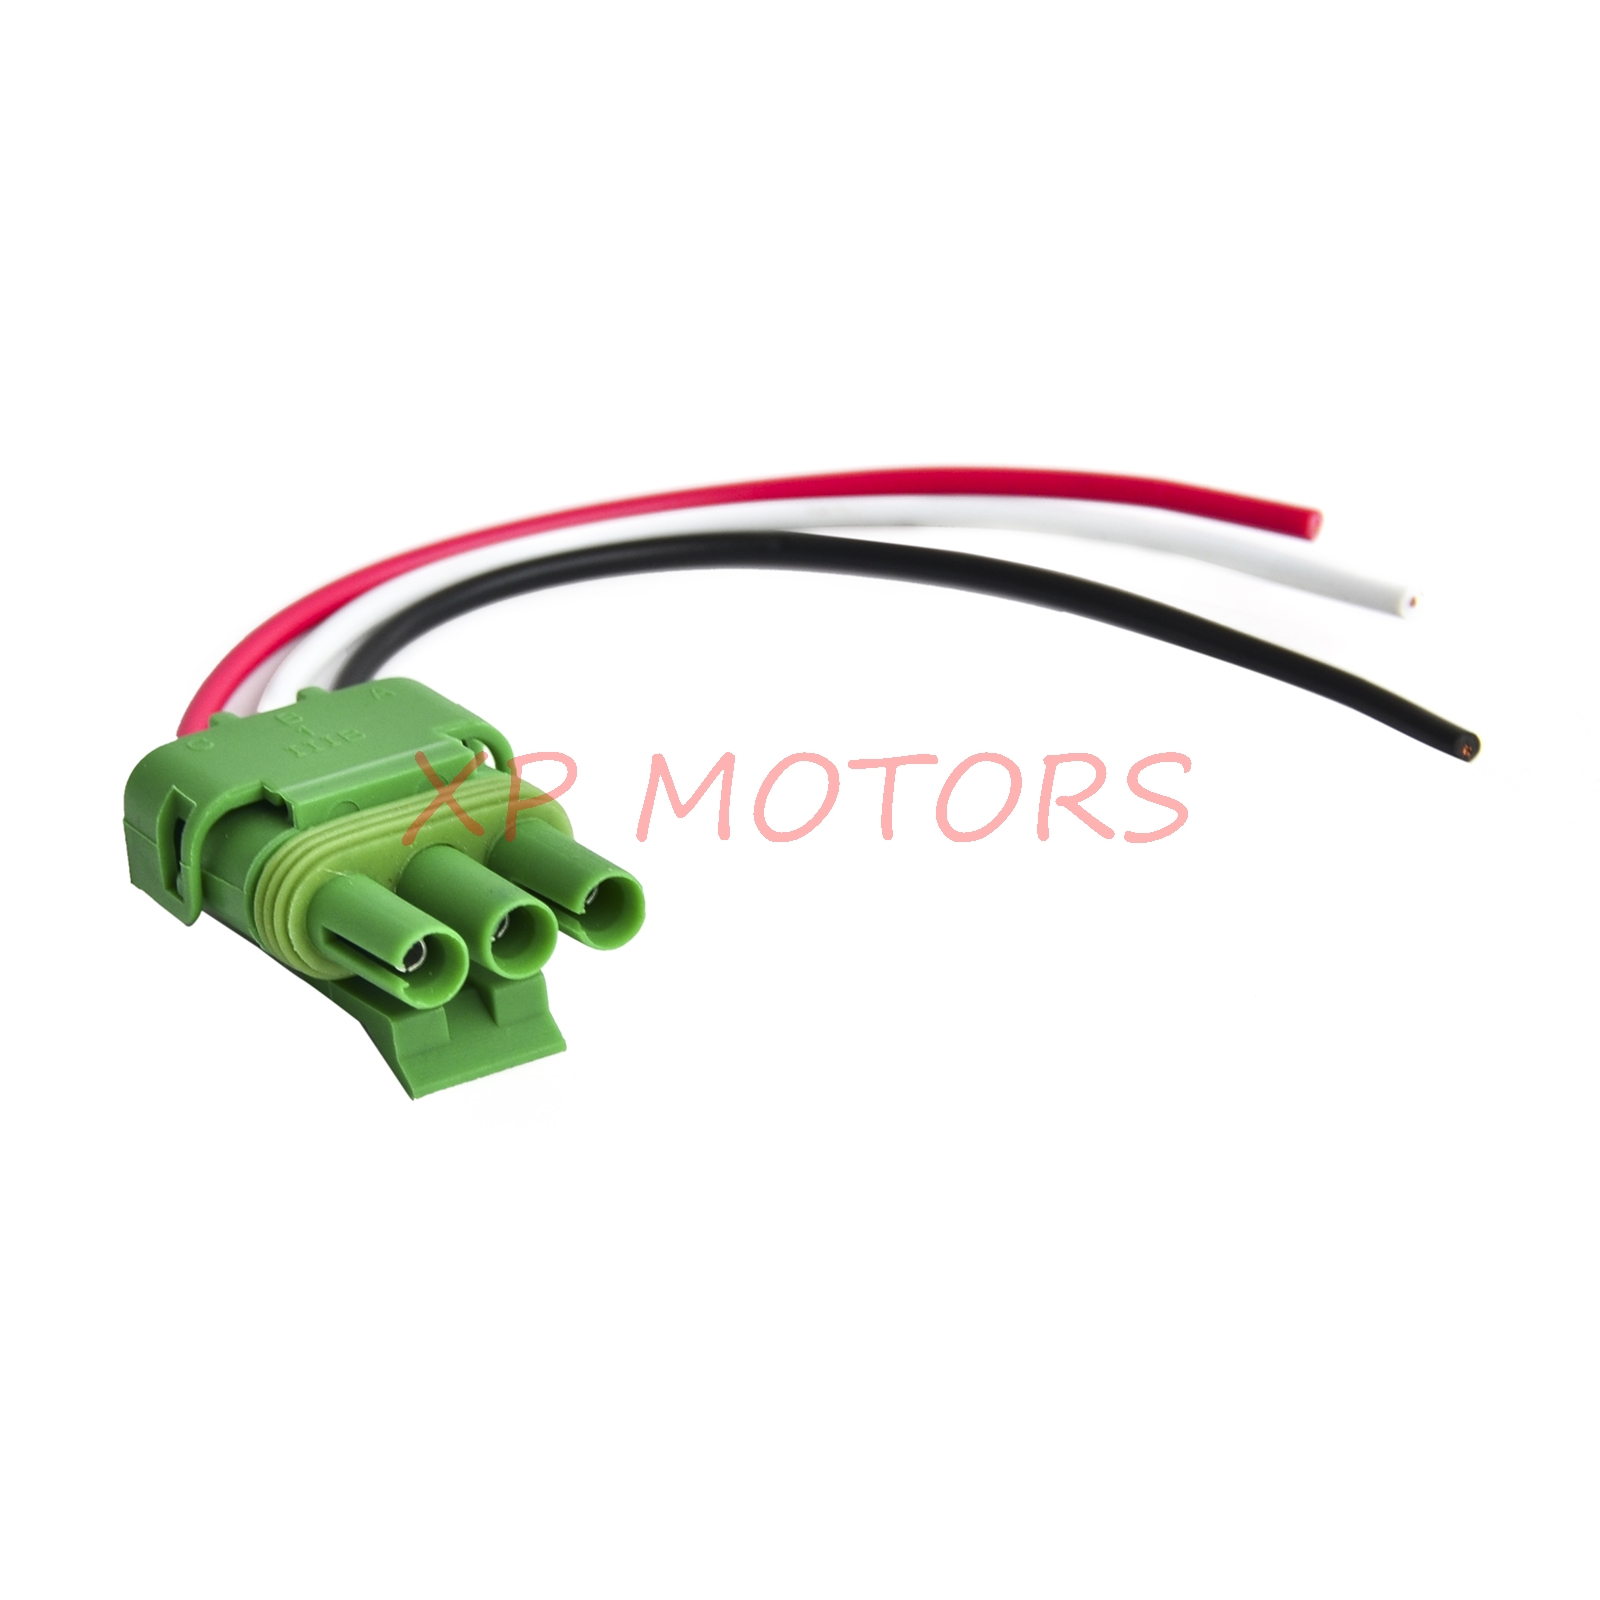 Manifold Absolute Pressure Sensor Tpi Tbi Map Wire Pigtail Connector  Transducer Wiring -Diagram Tbi Map Sensor Wiring